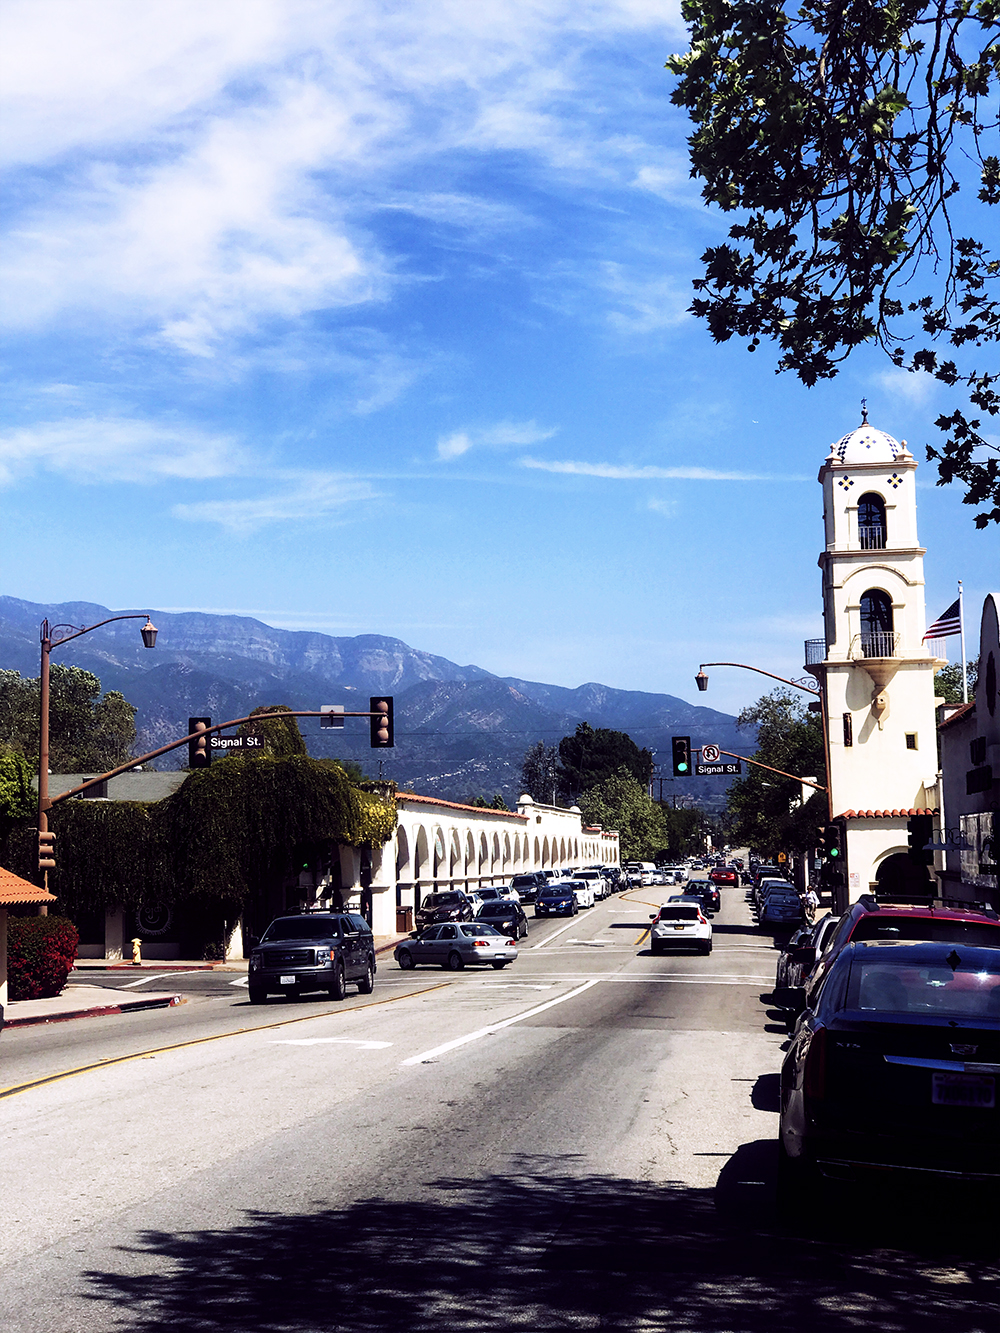 Looking down Ojai Ave in downtown Ojai